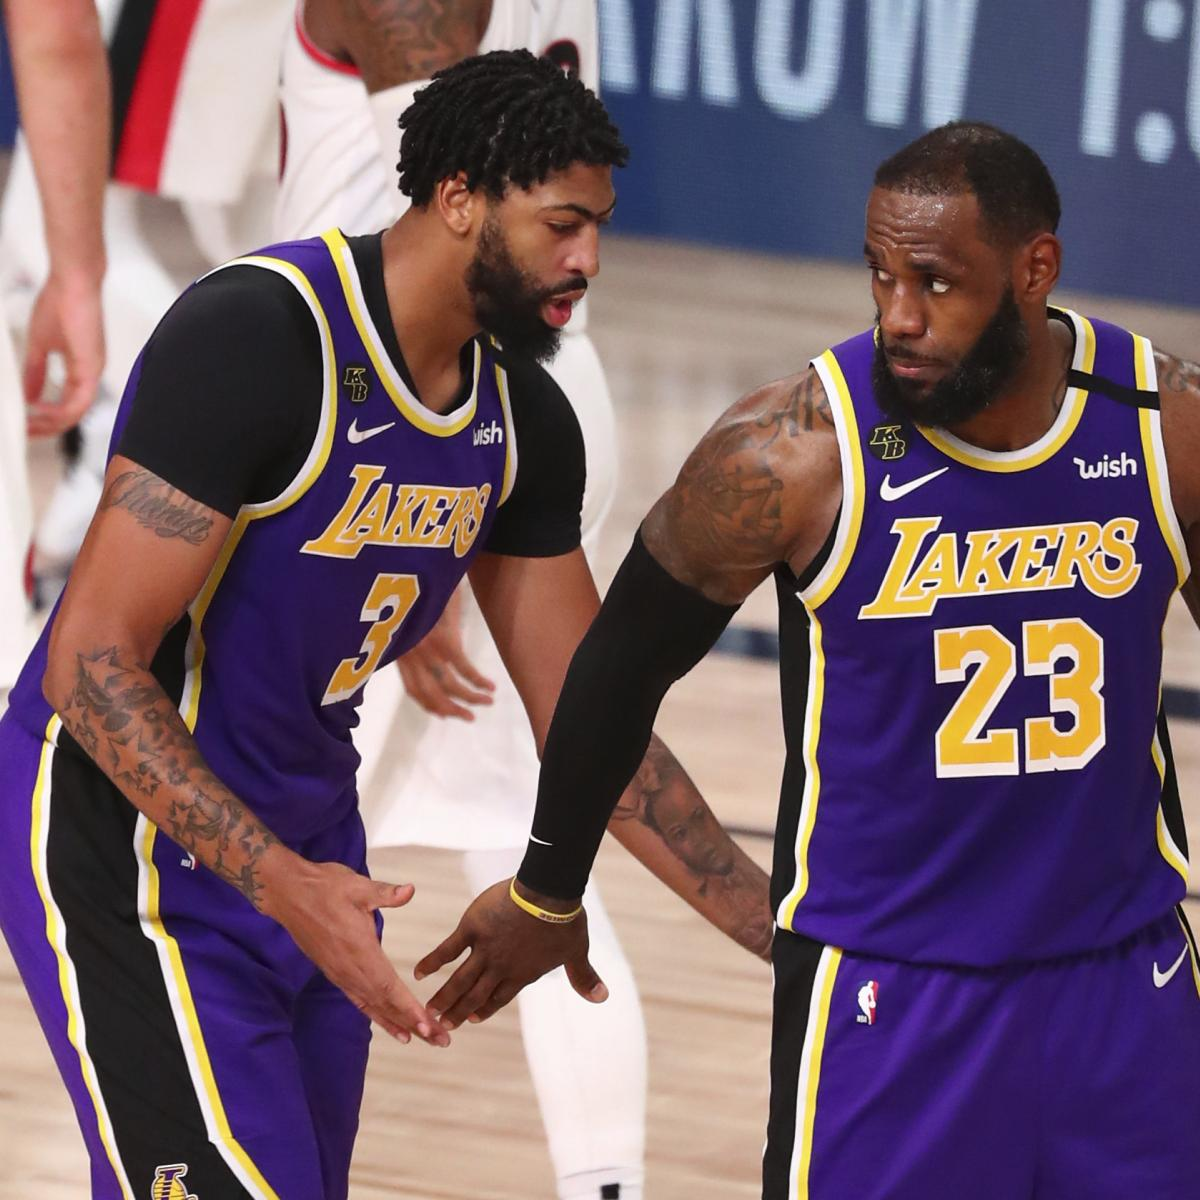 NBA Playoffs 2020: Postseason Standings, Championship Odds and Predictions